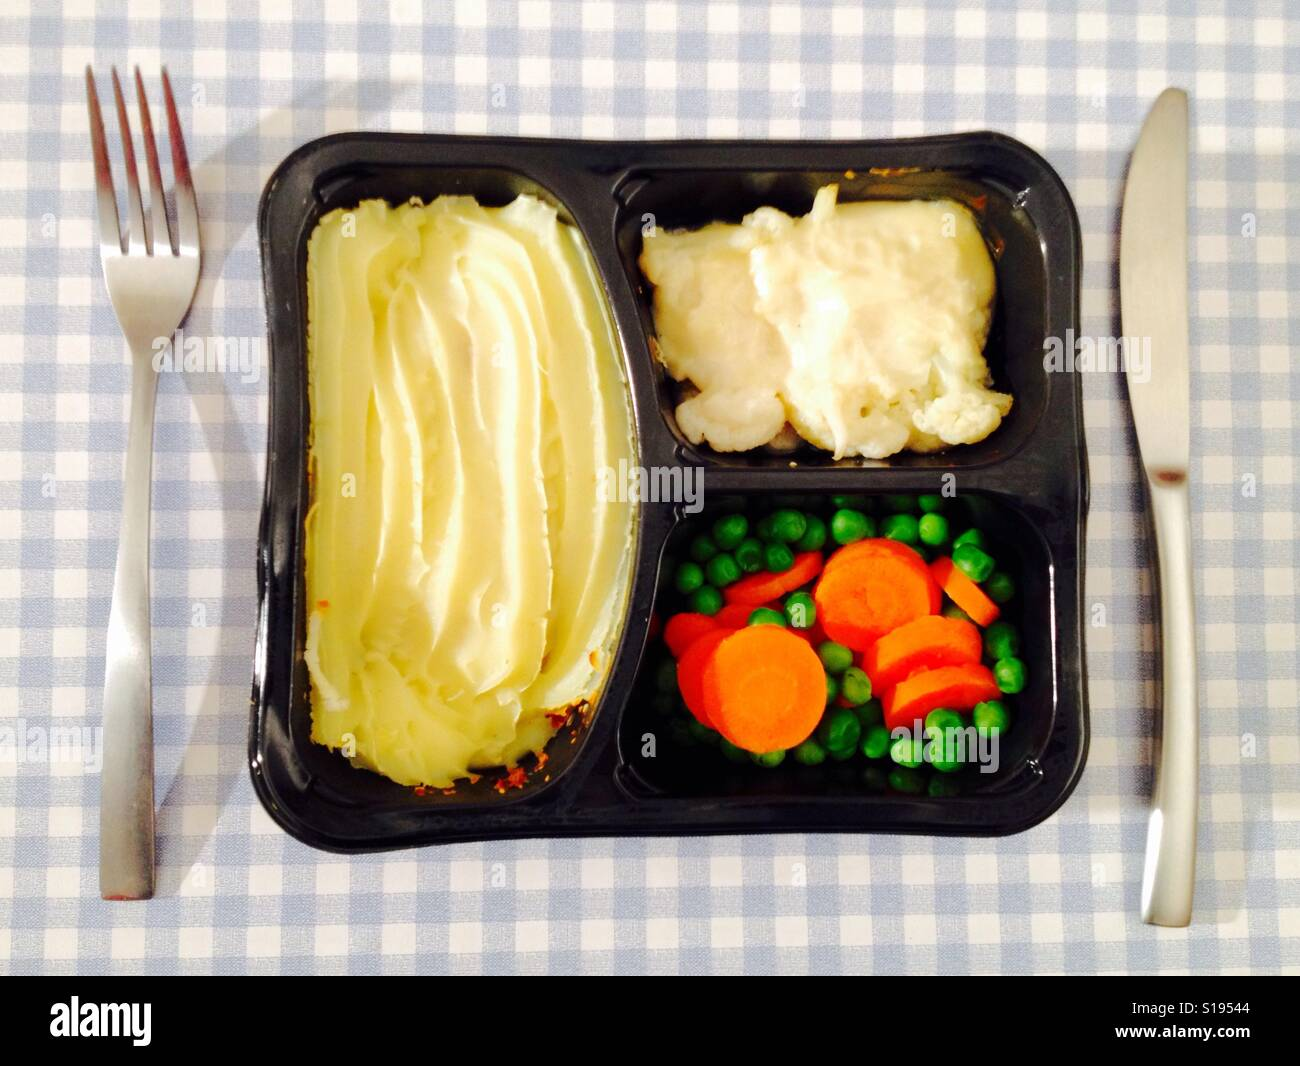 M&S meal for one cottage pie with cauliflower cheese, carrots and peas Stock Photo